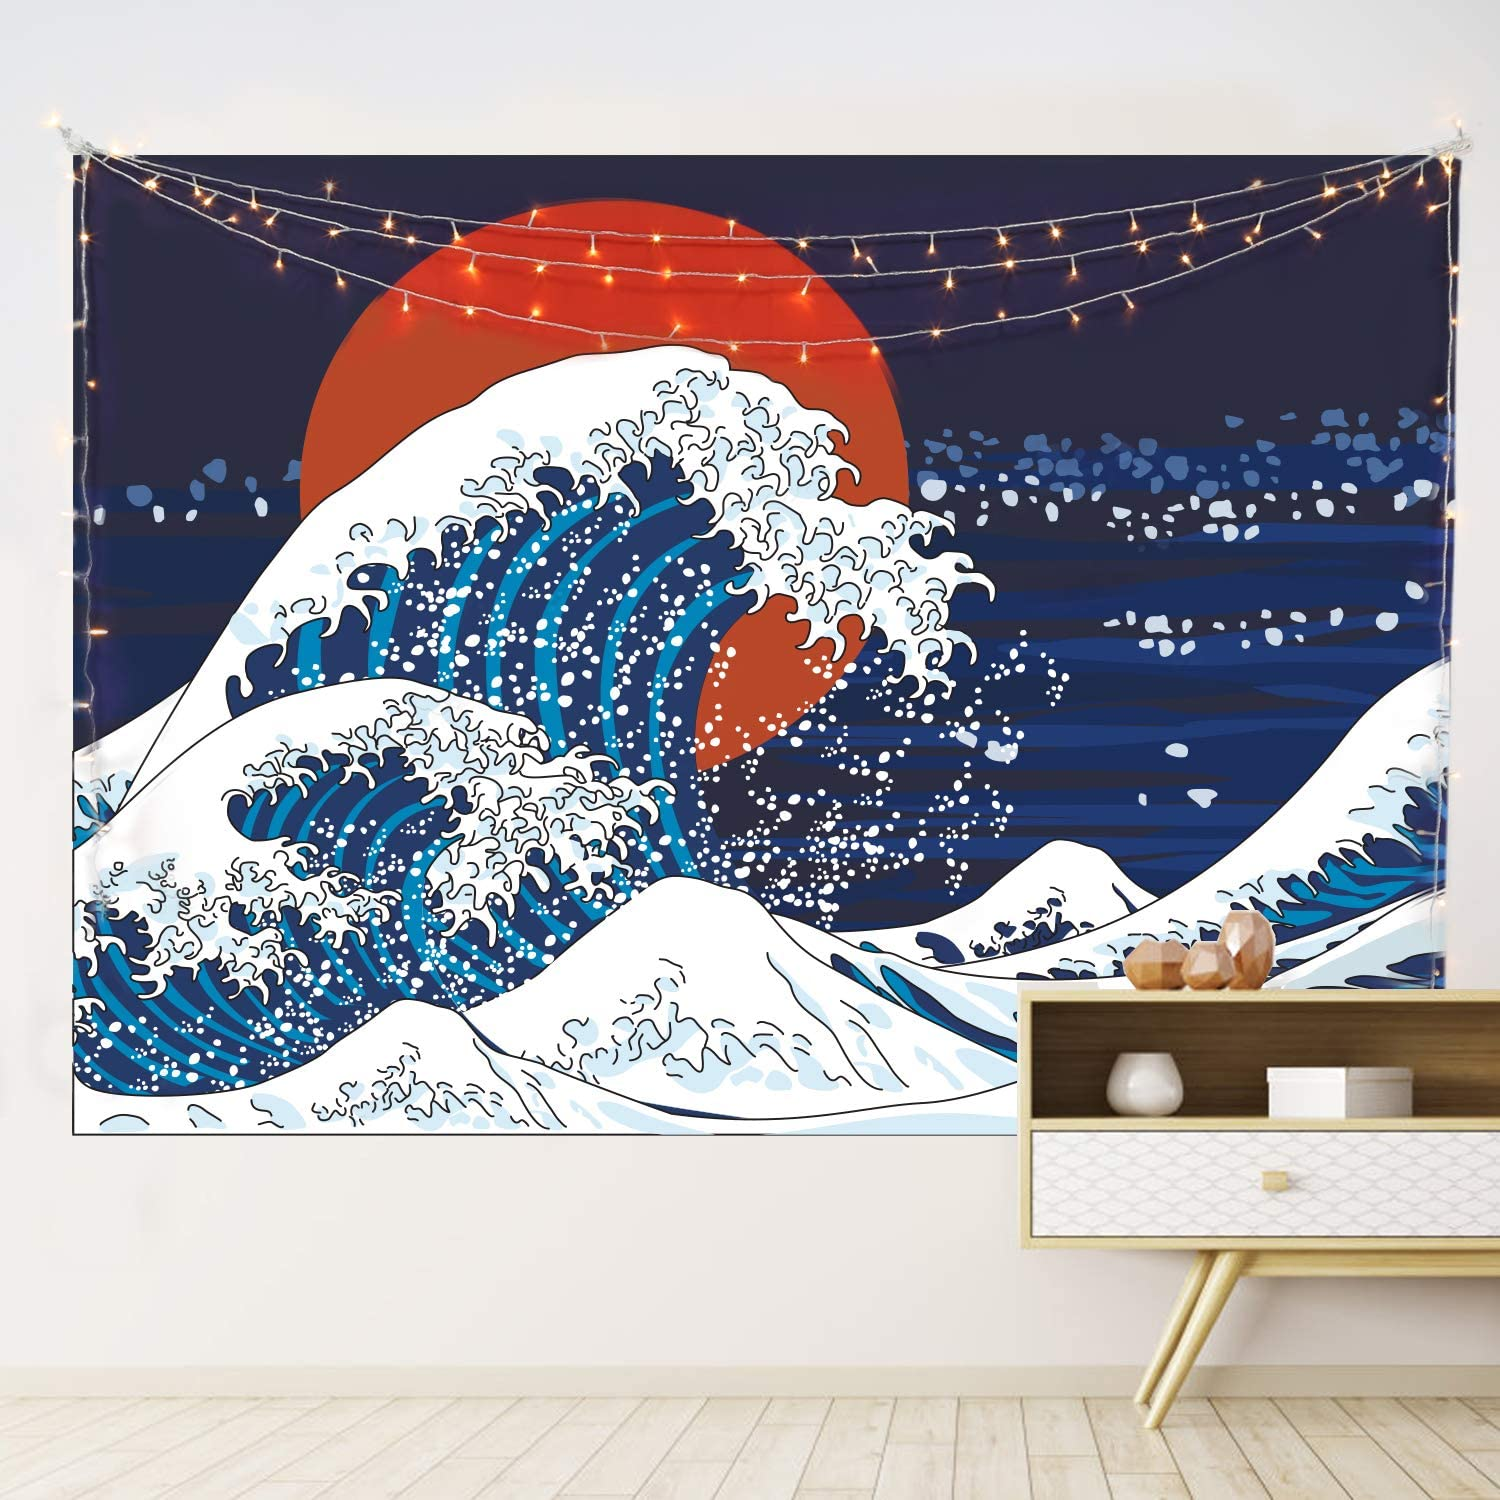 HOTMIR Wall Tapestry Hanging - Great Wave Tapestry Ocean as Wall Art and Home Decor for Bedroom, Living Room, Dorm Decor (Blue & Red, 51.2x59.1 Inches)